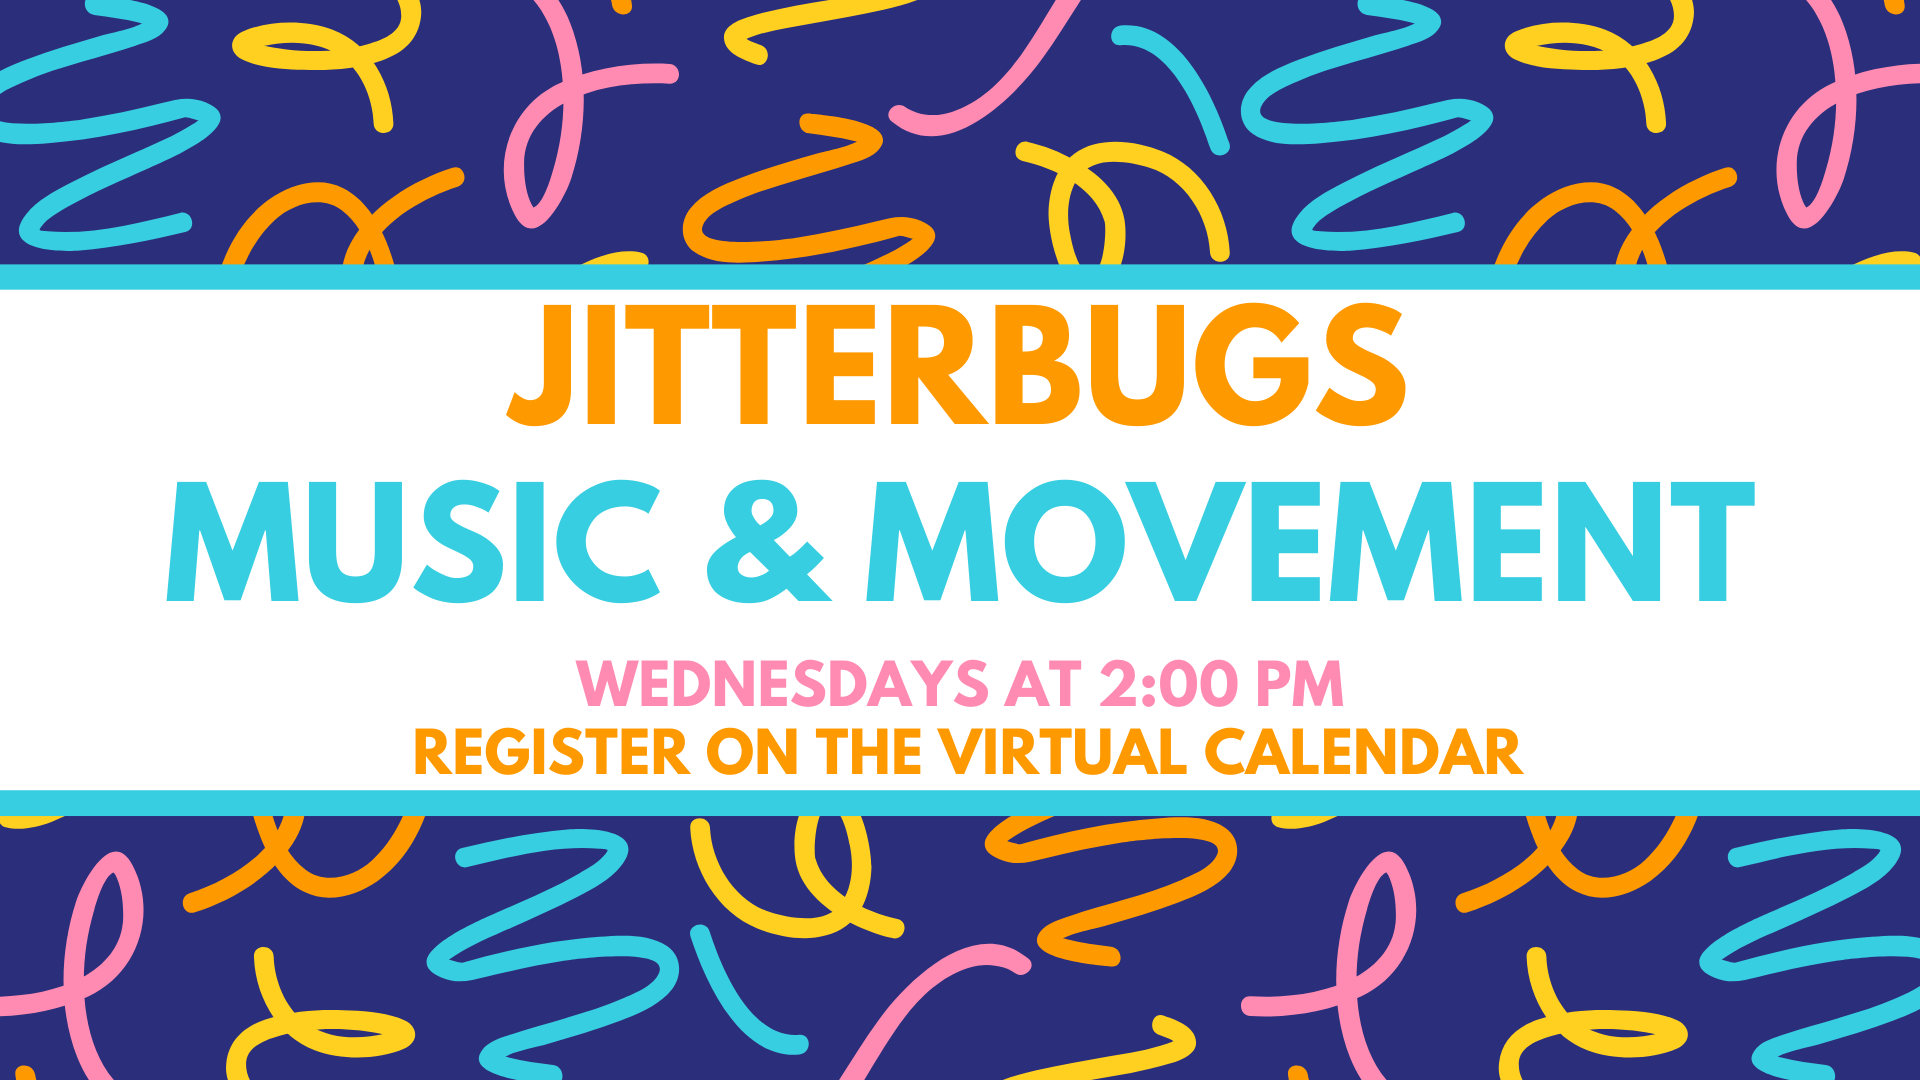 Jitterbugs Music and Movement